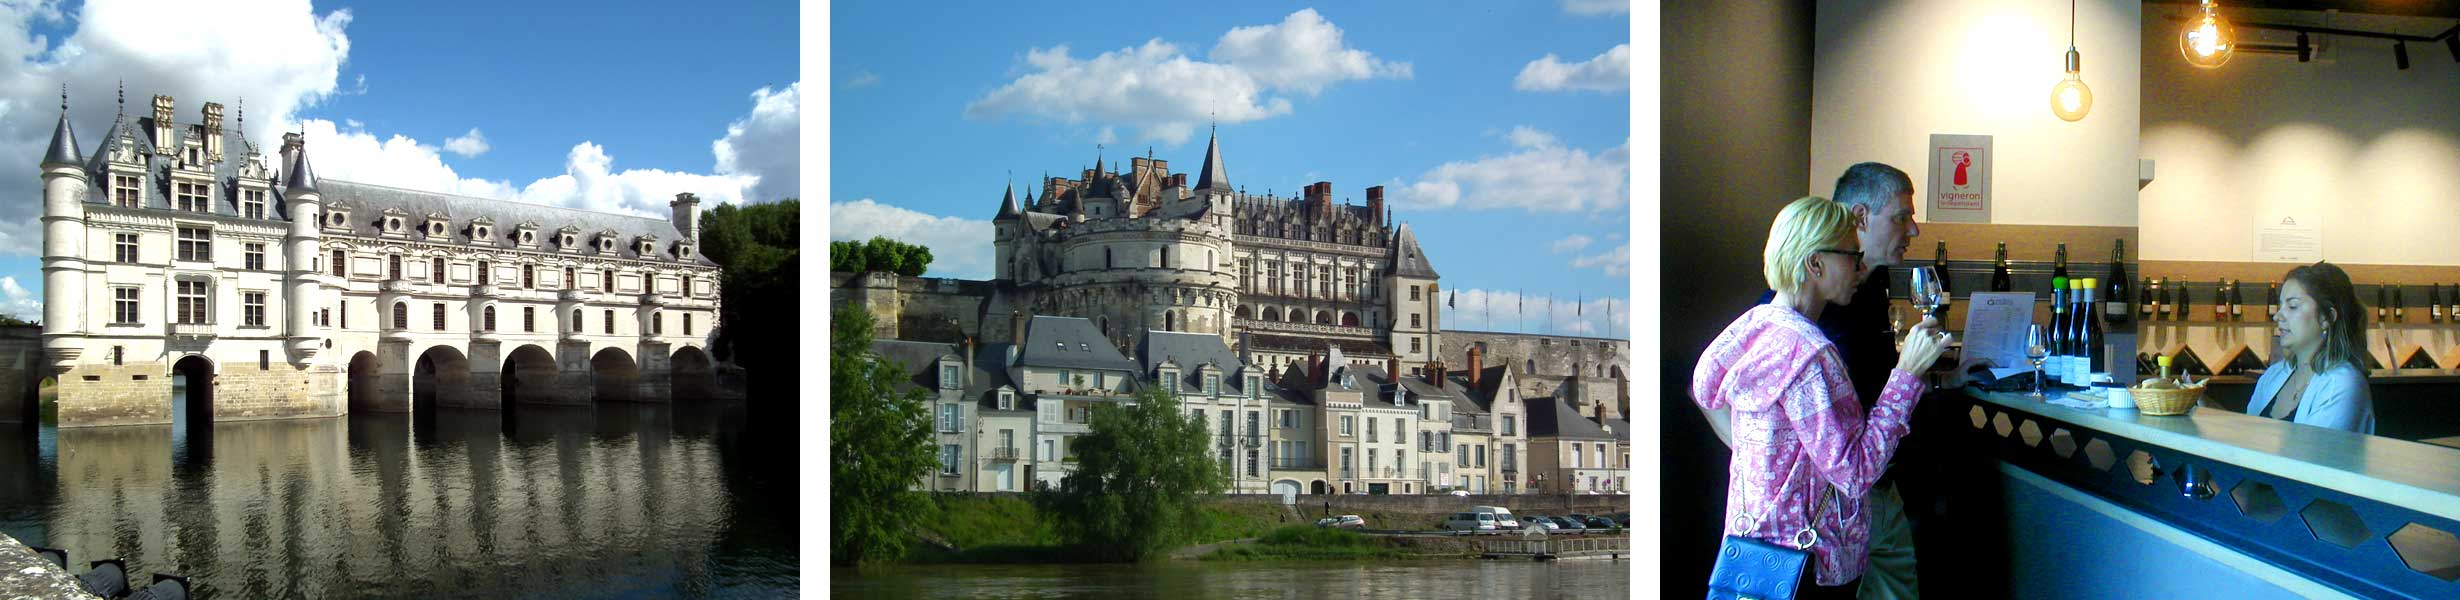 Chenonceau Amboise and Wine